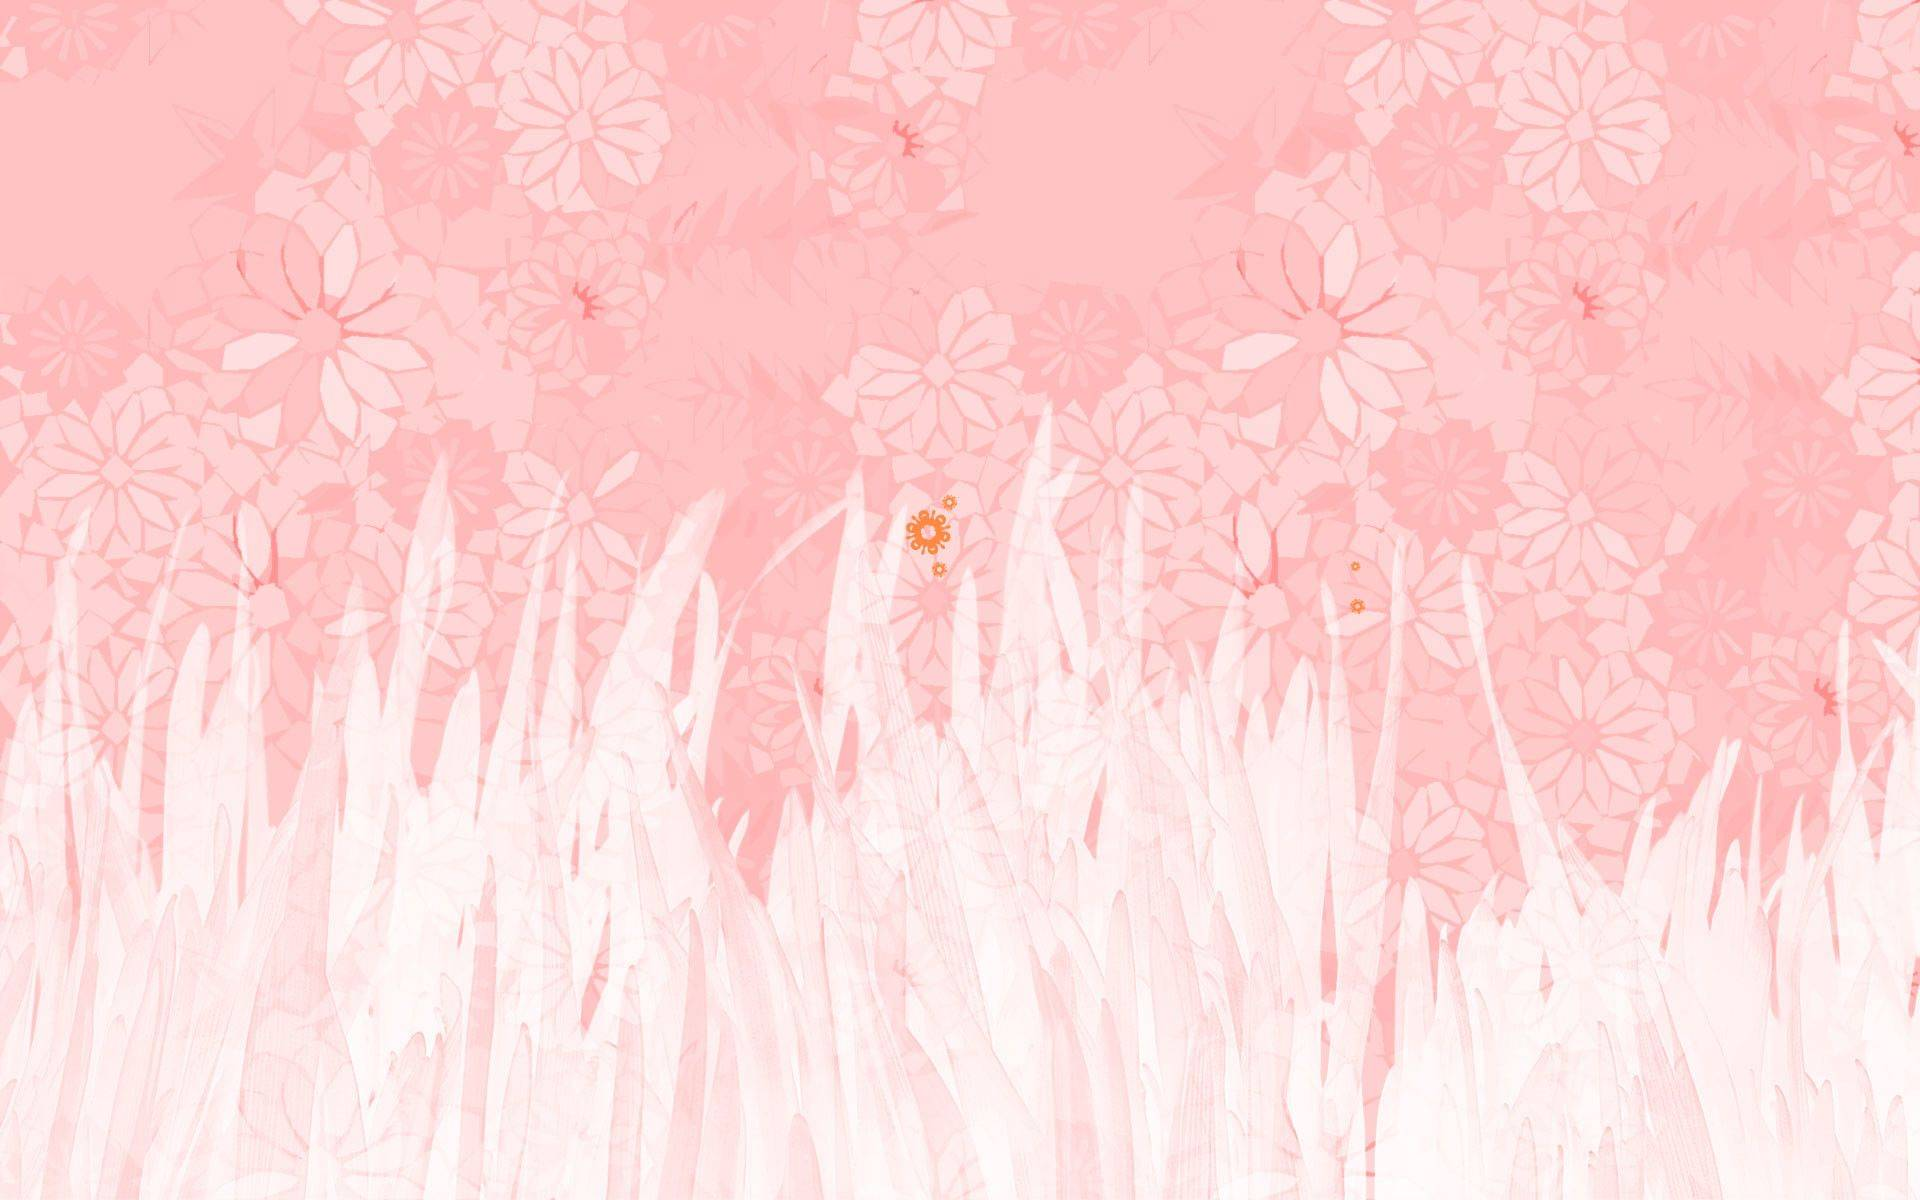 Pink Aesthetic Wallpaper Backgrounds Beautiful Aesthetic Puter Light Pink Wallpapers top Free